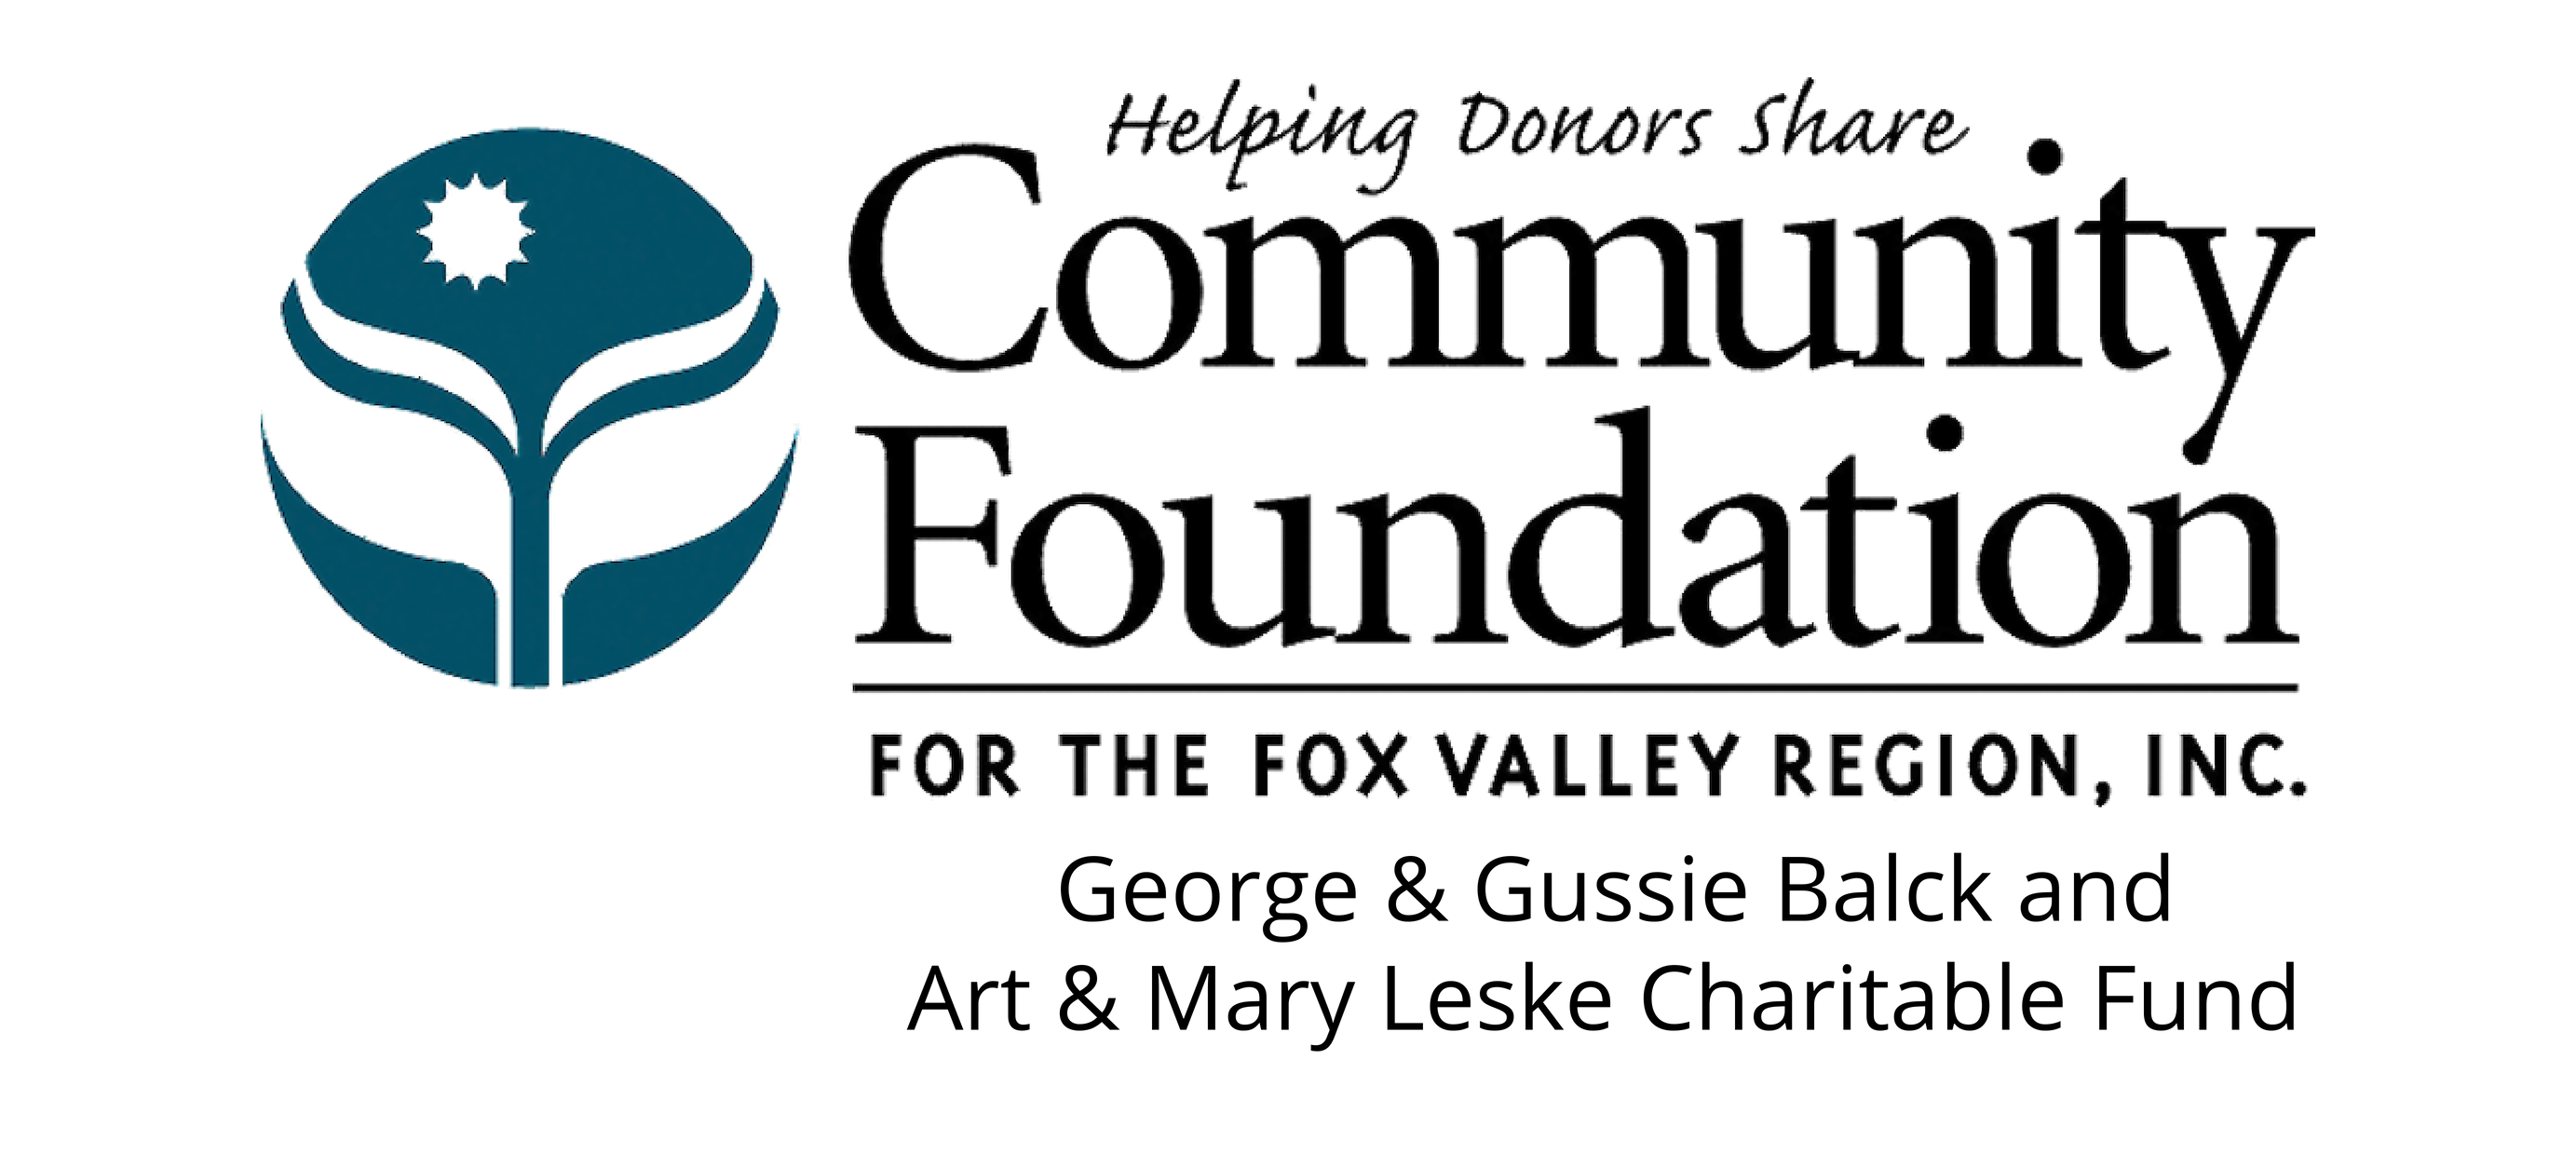 2 Community Foundation